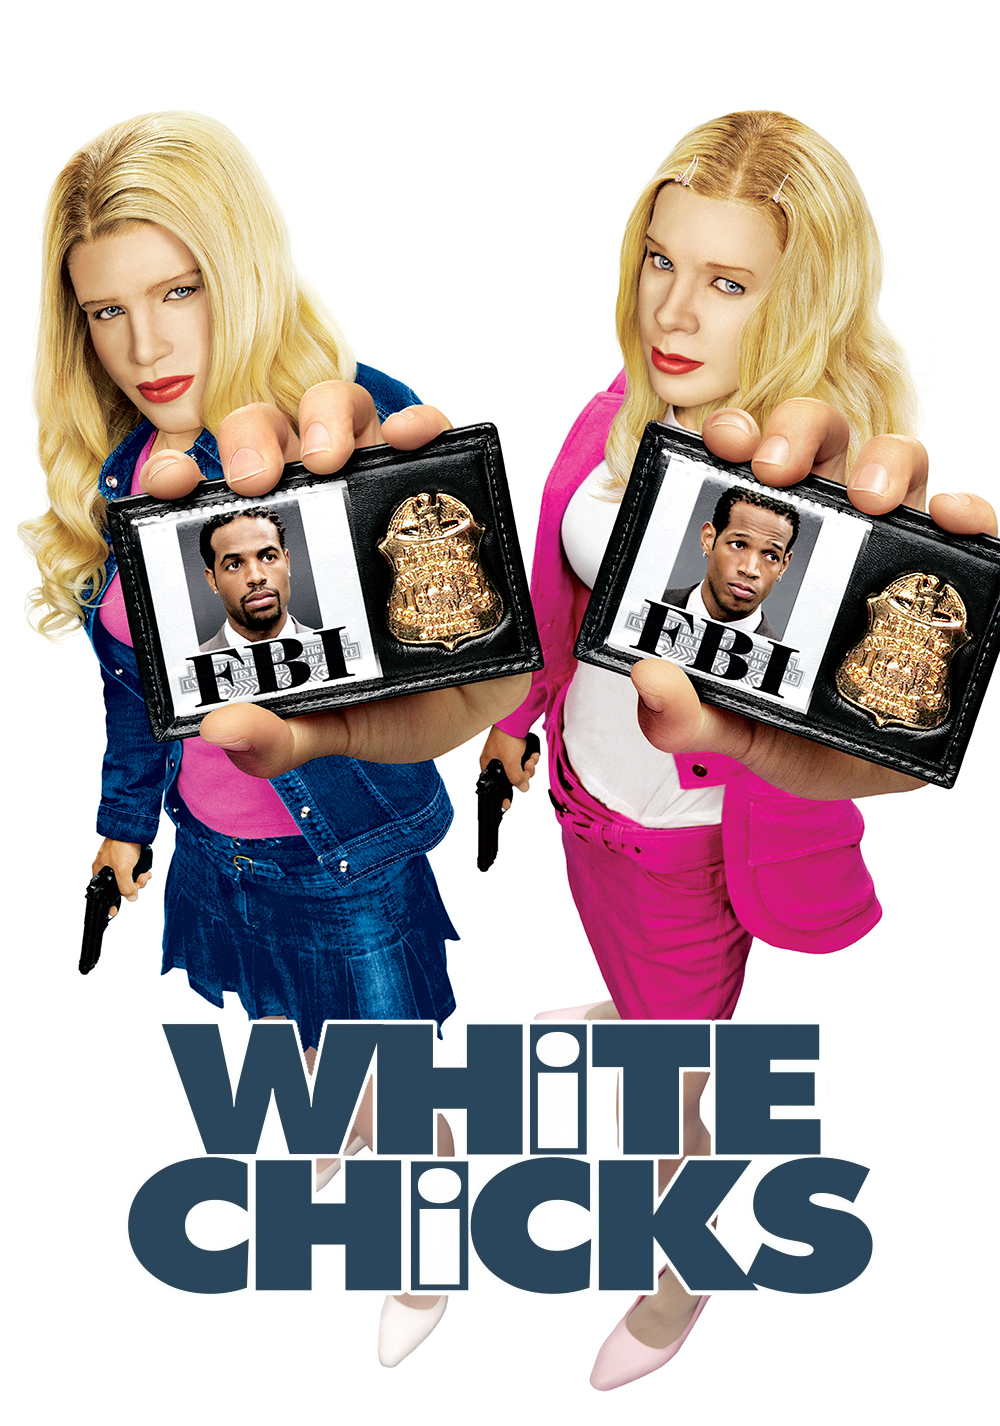 There's A 'White Chicks' Sequel On The Way [Watch] white chicks 5336b7cab9f0f